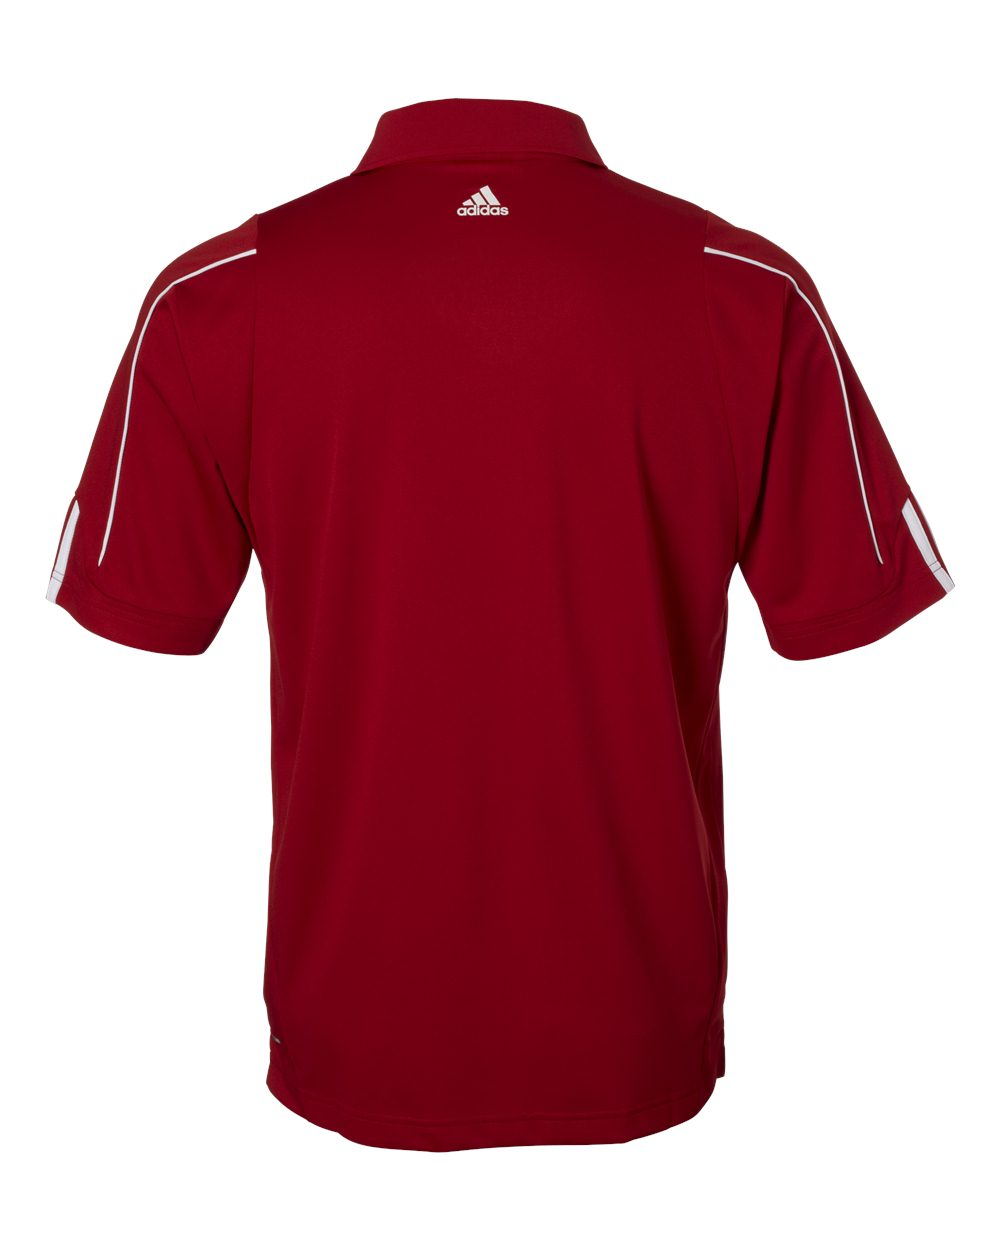 Adidas-Mens-Climalite-3-Stripes-Cuff-Sport-Shirt-A76-up-to-4XL miniature 19